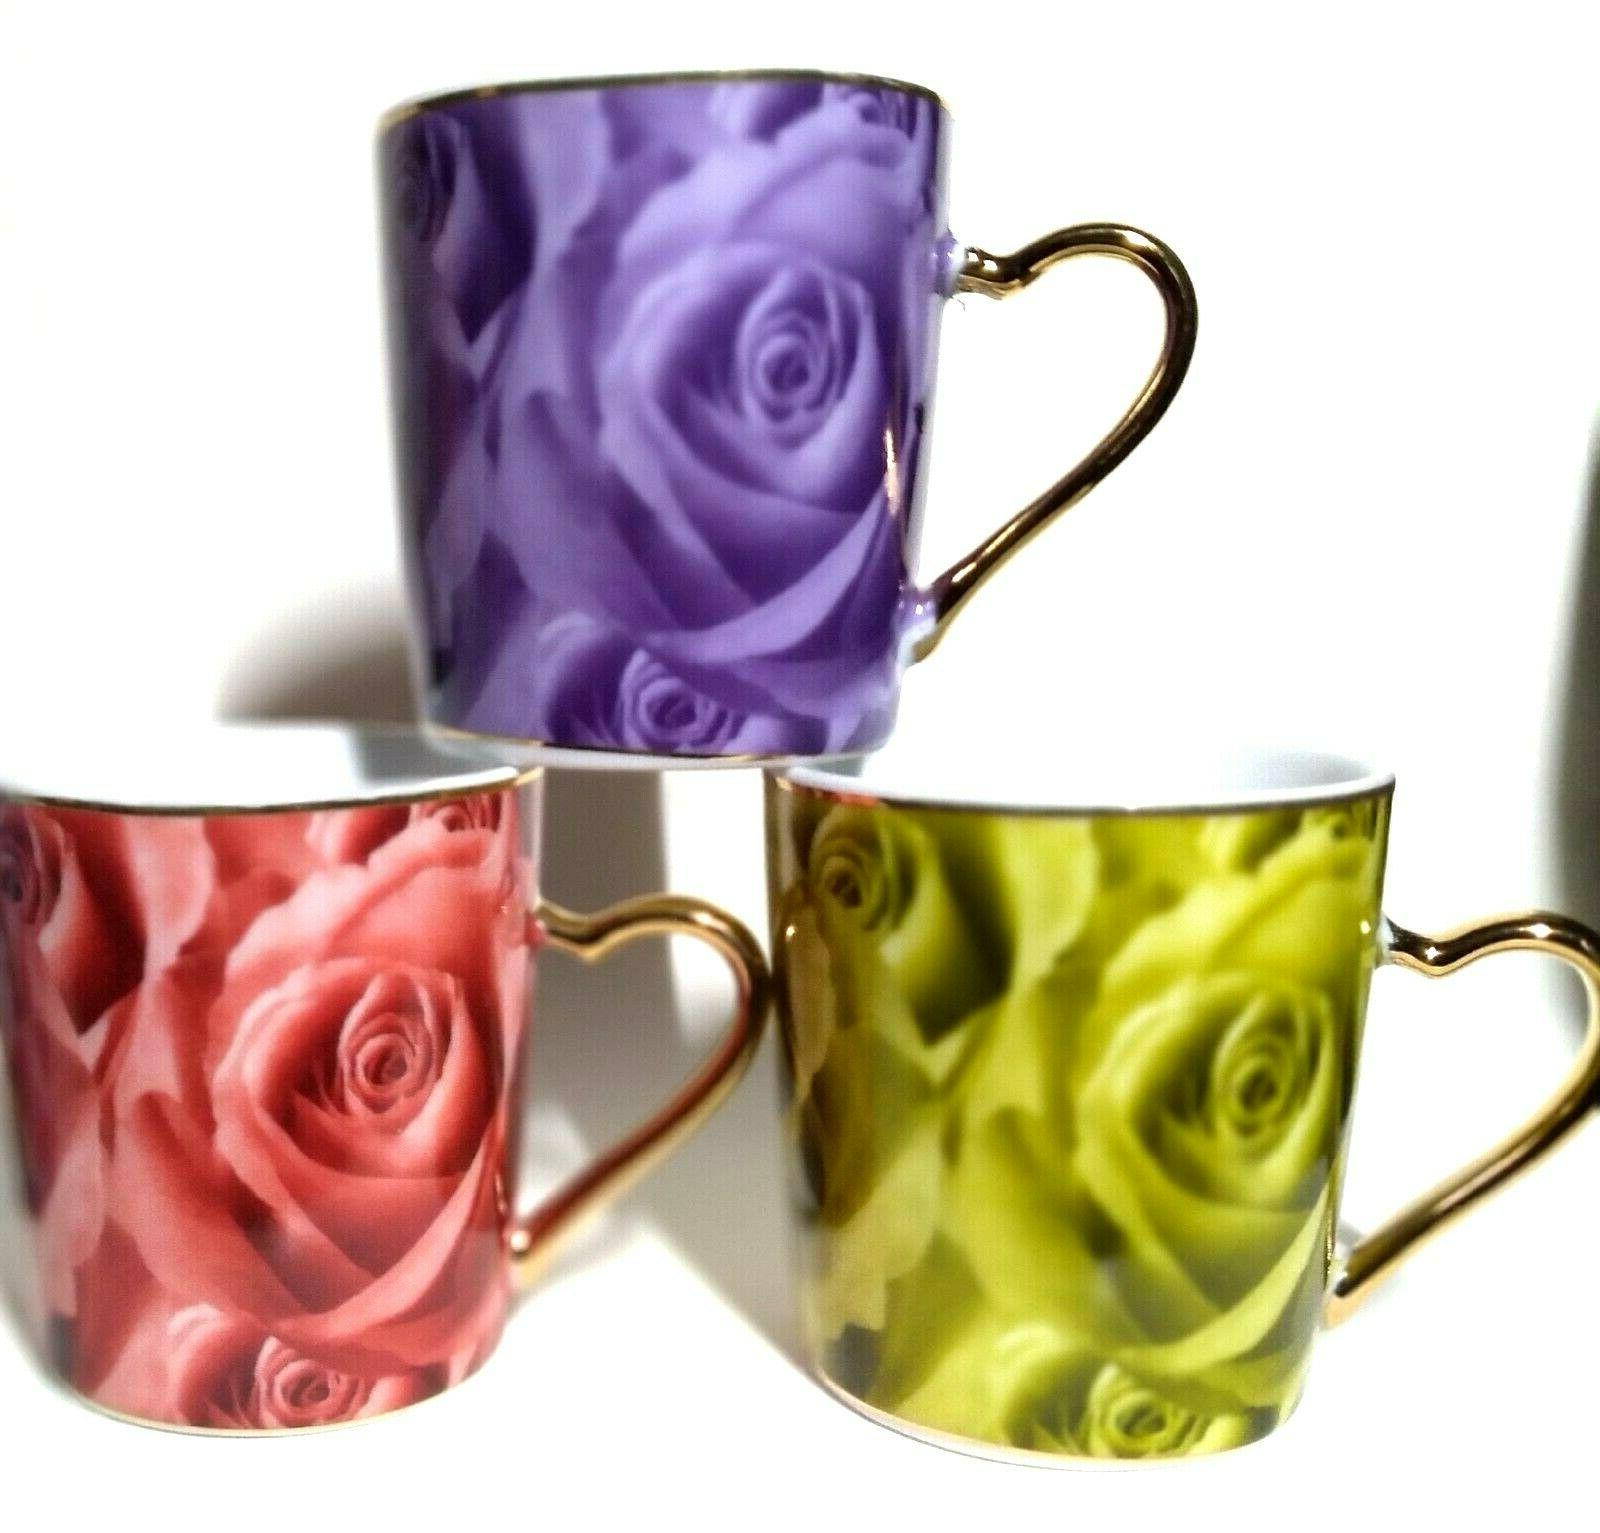 CLASSIC Coffee 12 & Saucers in Floral Pattern - NIB